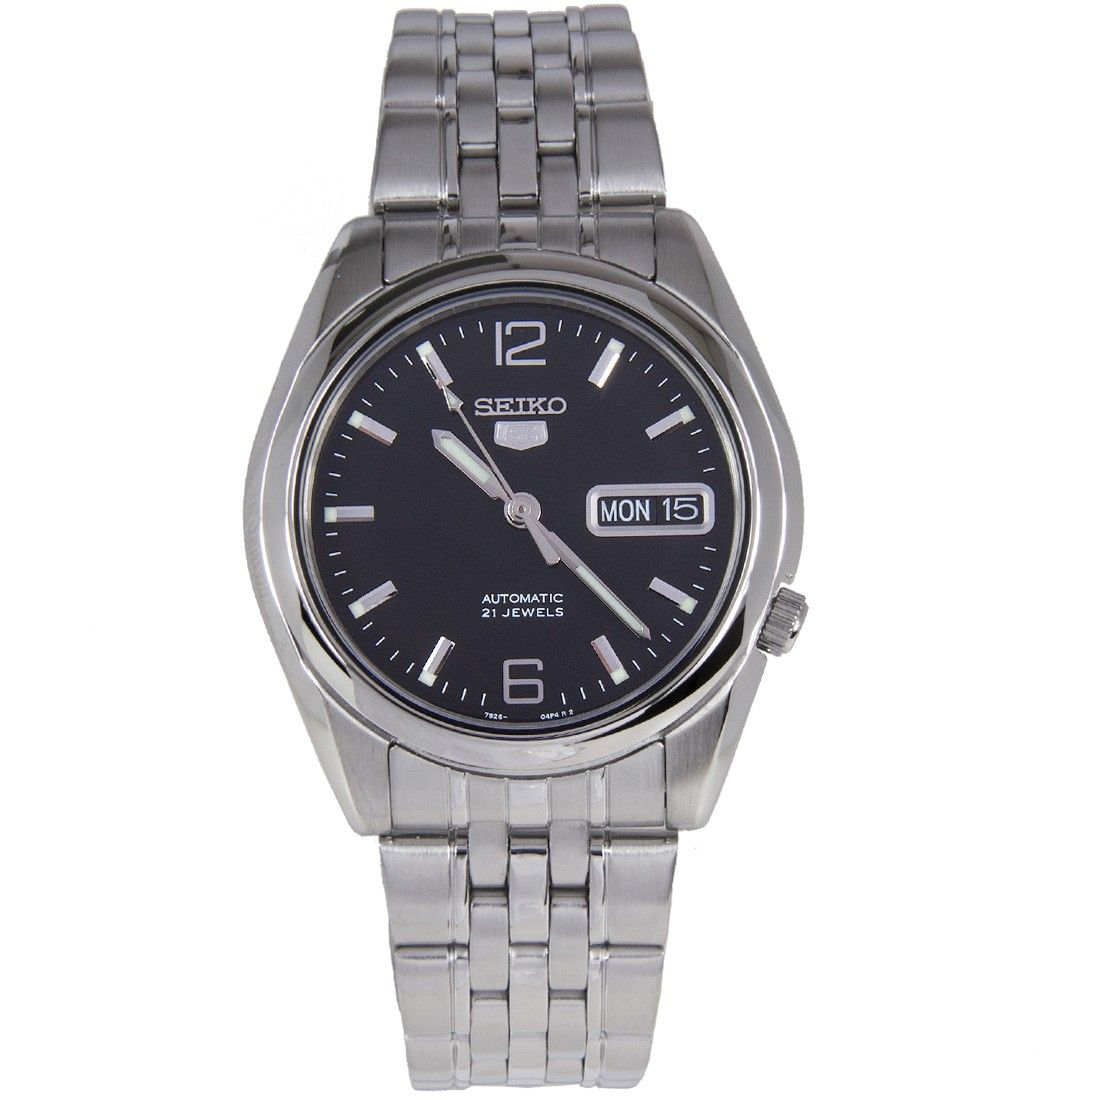 watches rico images price at rs product of set sordi lowest watchesat myntra online analogue men india sale gosf